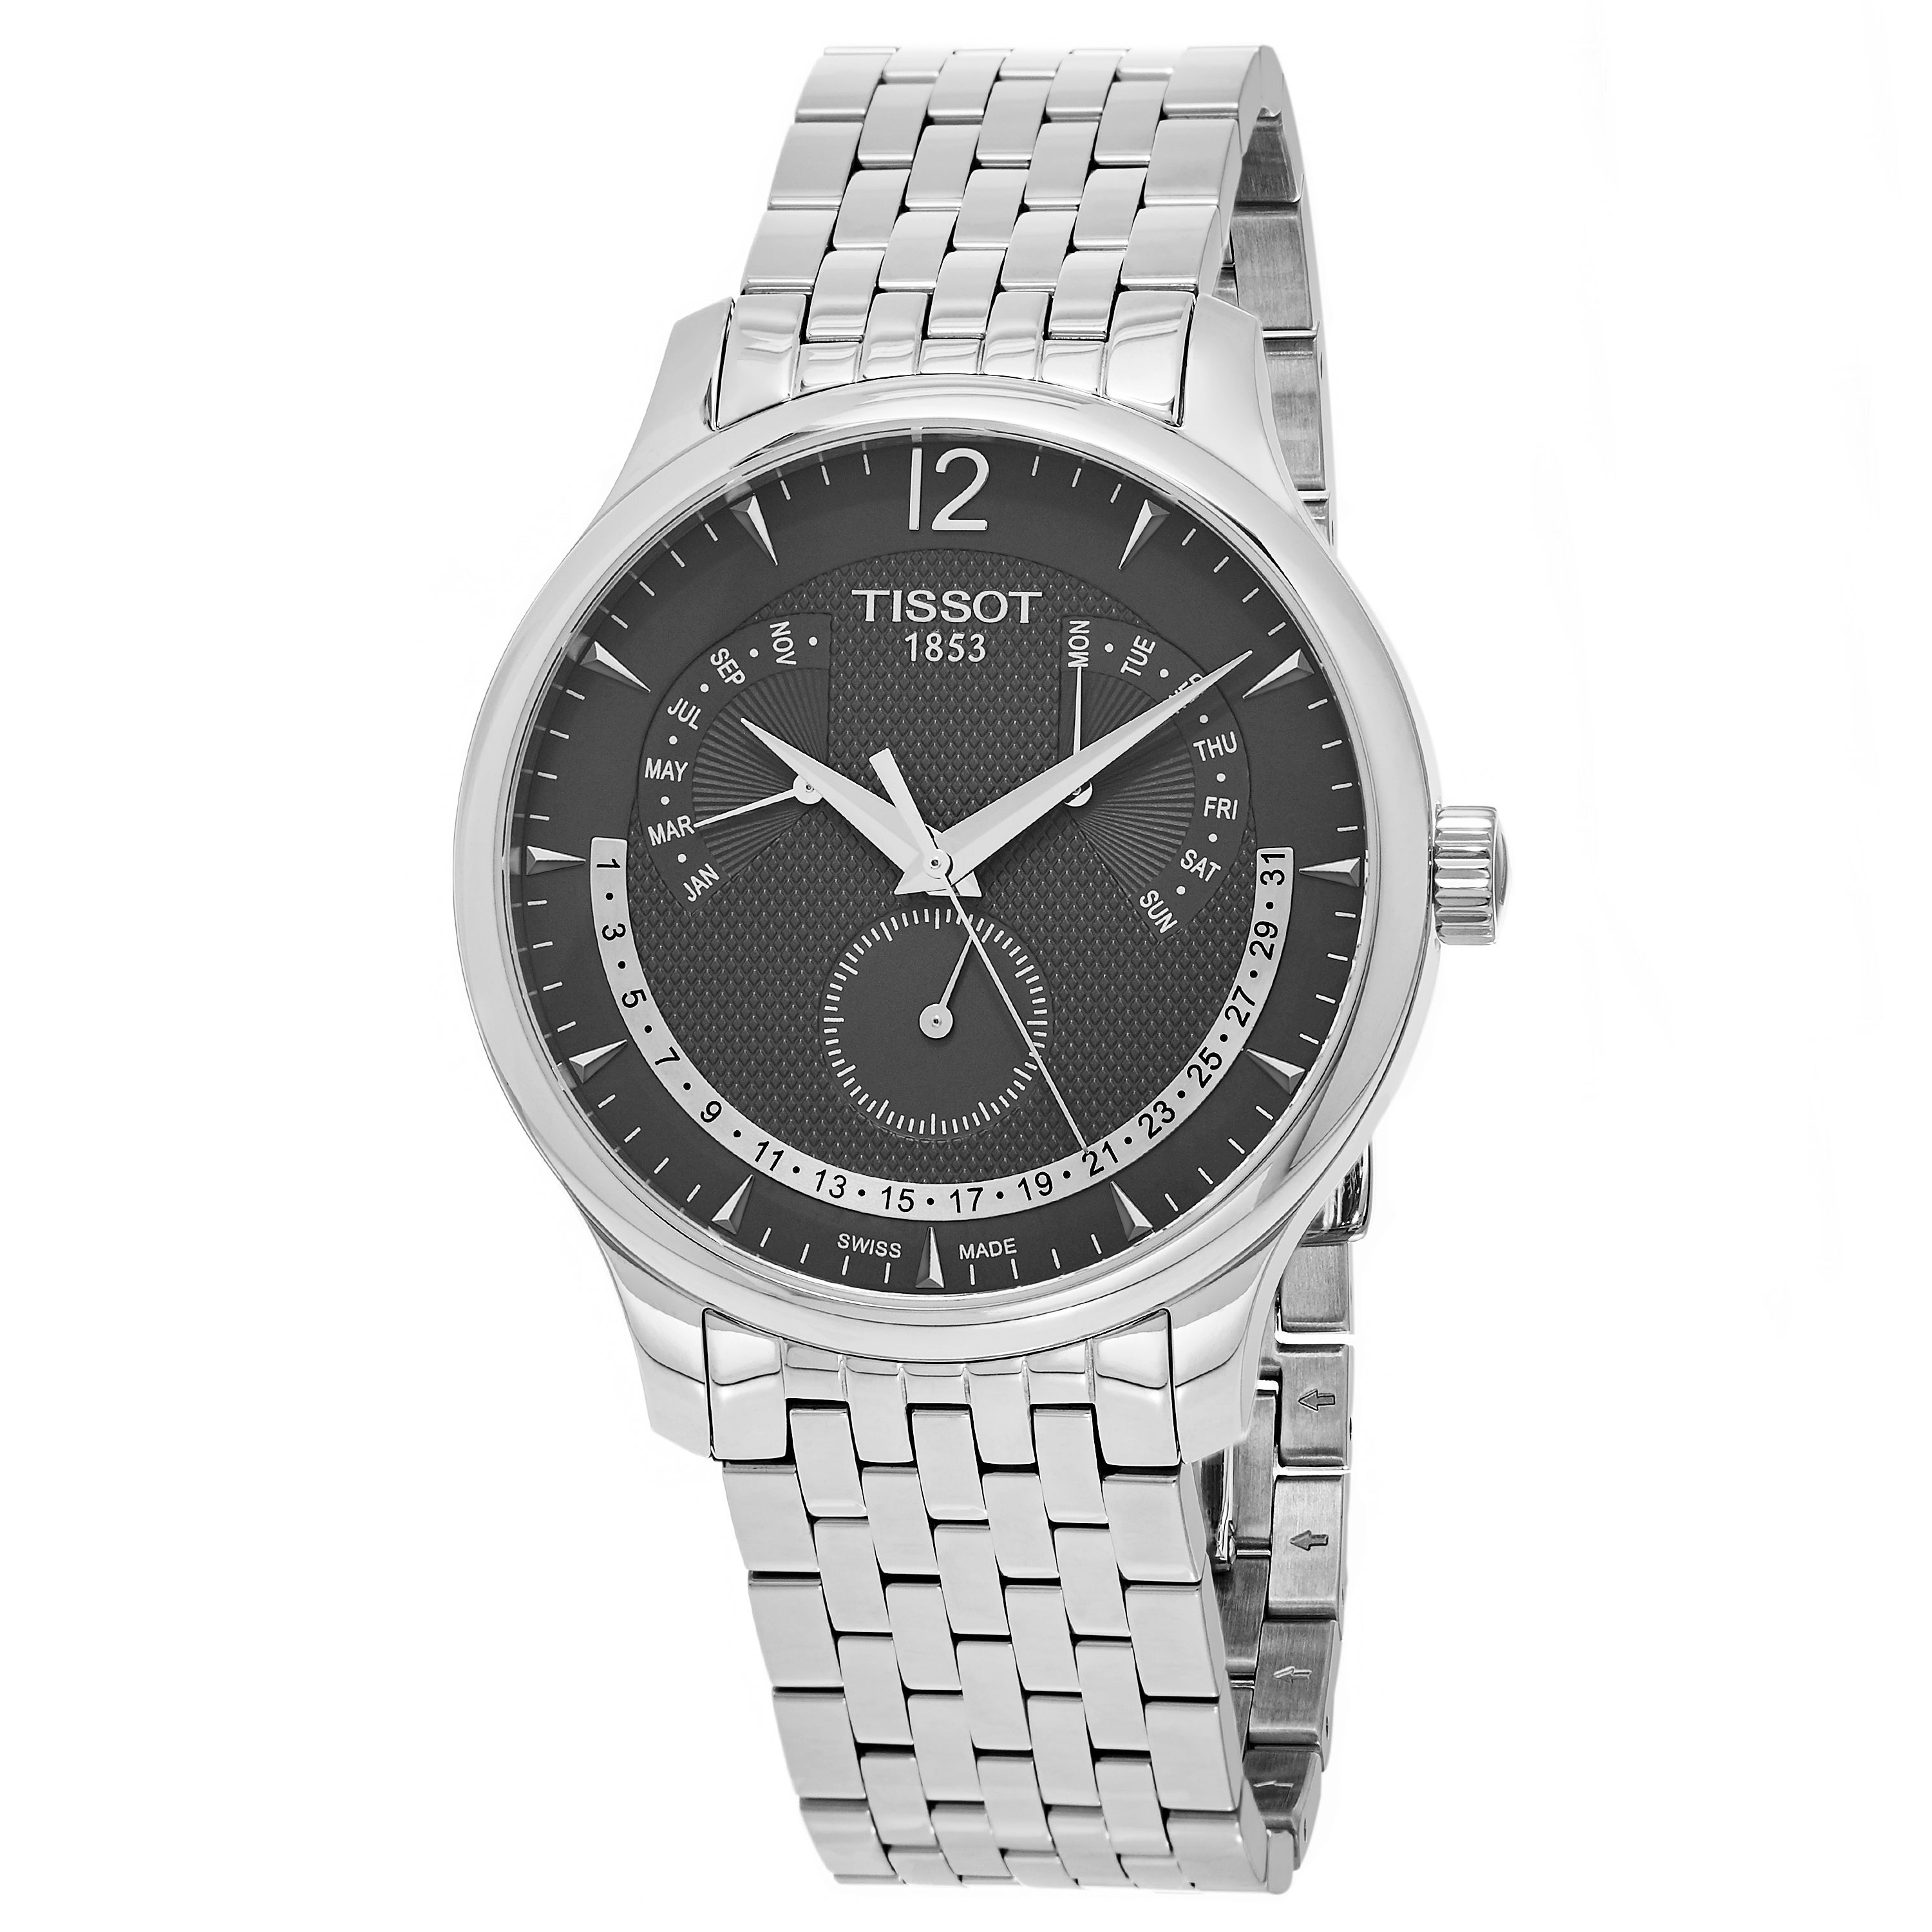 Tissot Men's T063.637.11.067.00 'Tradition' Grey Dial Sta...